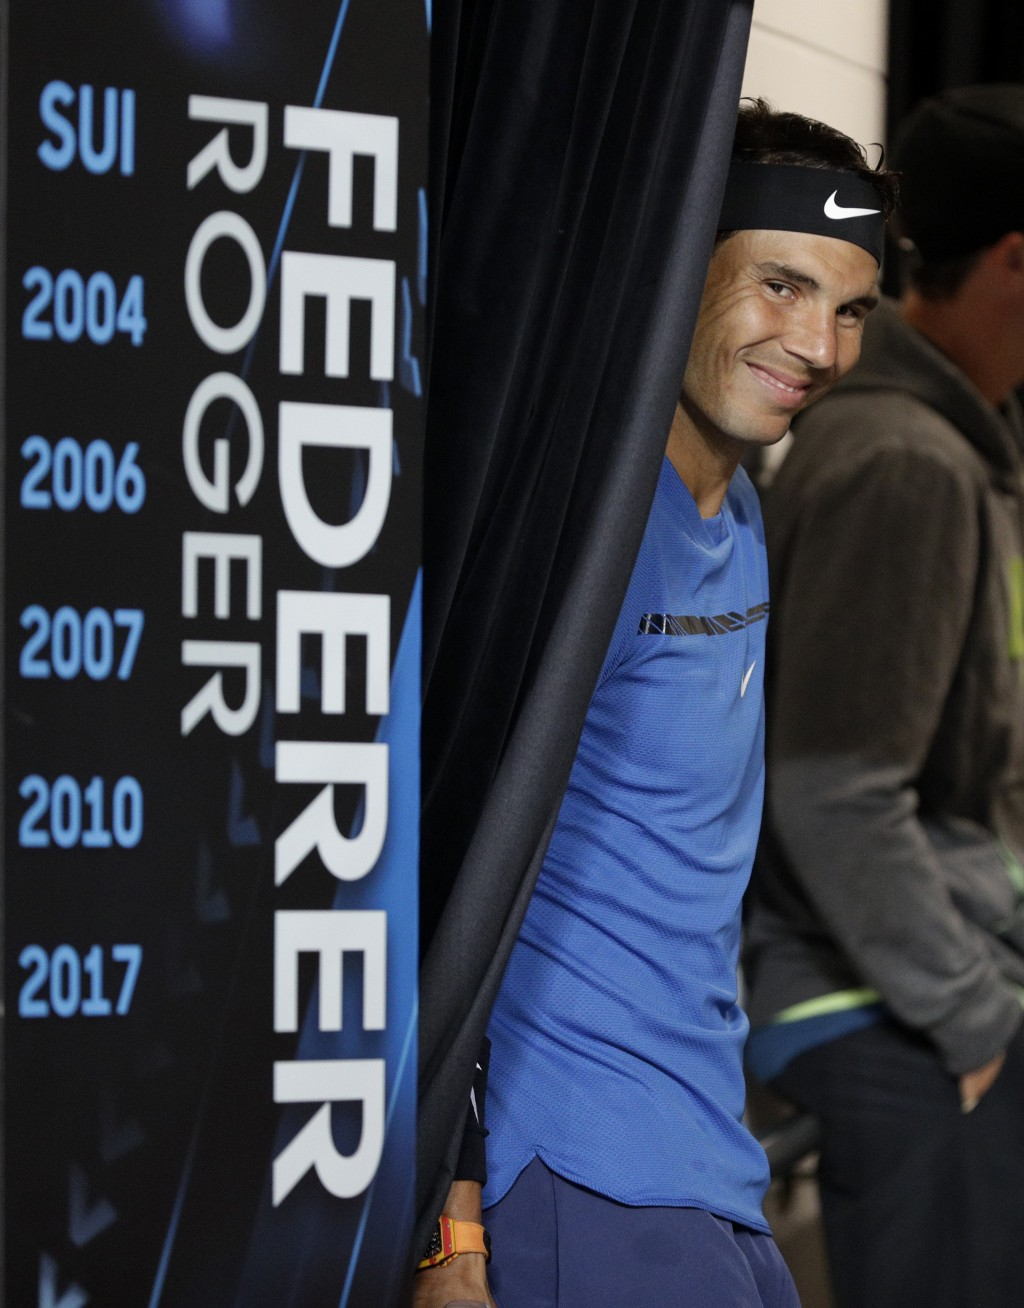 Spain's Rafael Nadal smiles as he waits to go on court for a practice match against Austria's Dominic Thiem on Margaret Court Arena ahead of the Austr